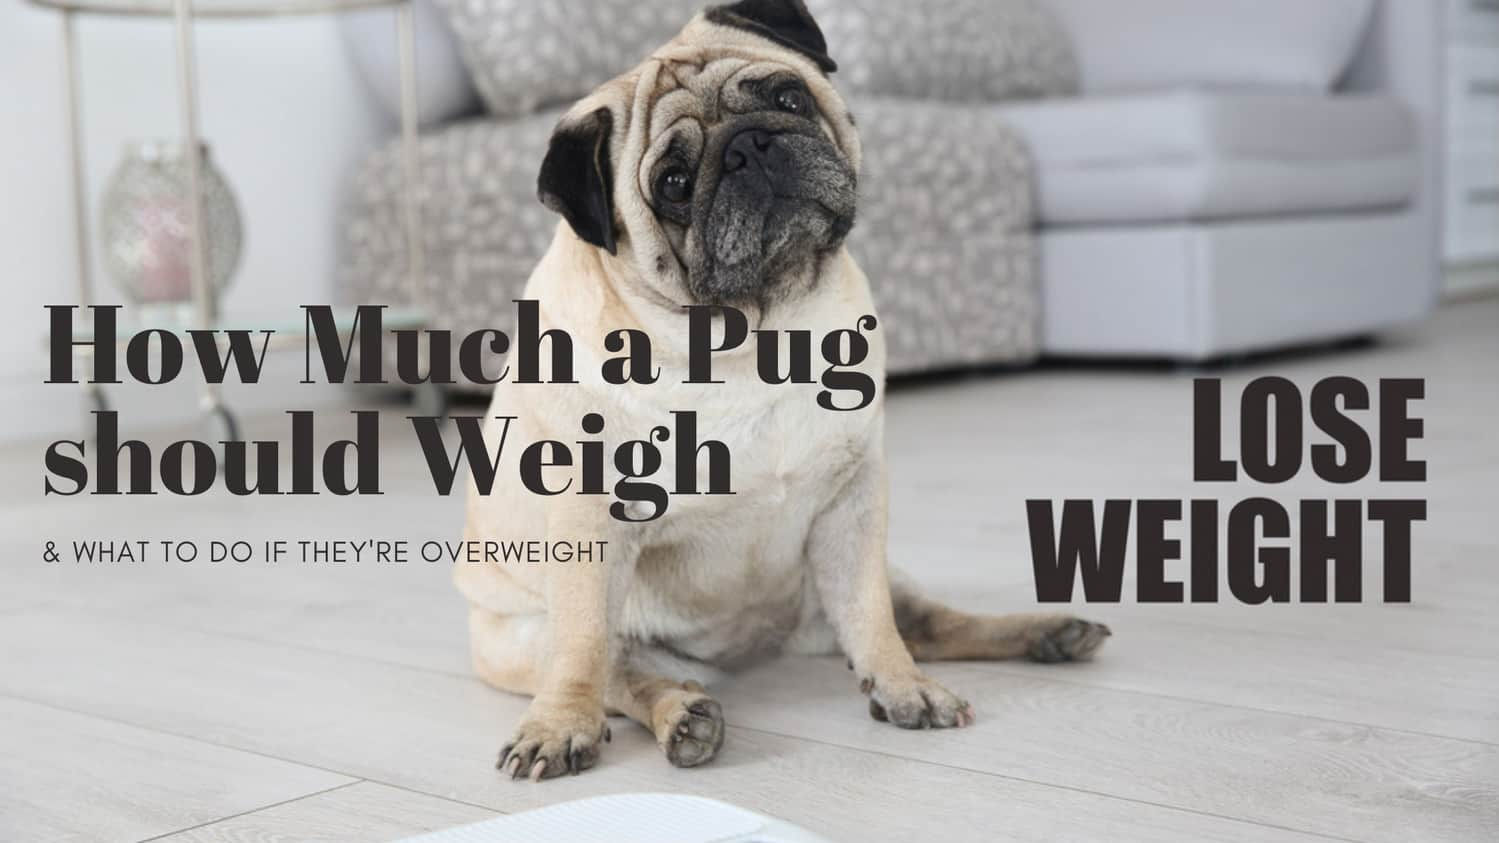 How Much a Pug should Weigh